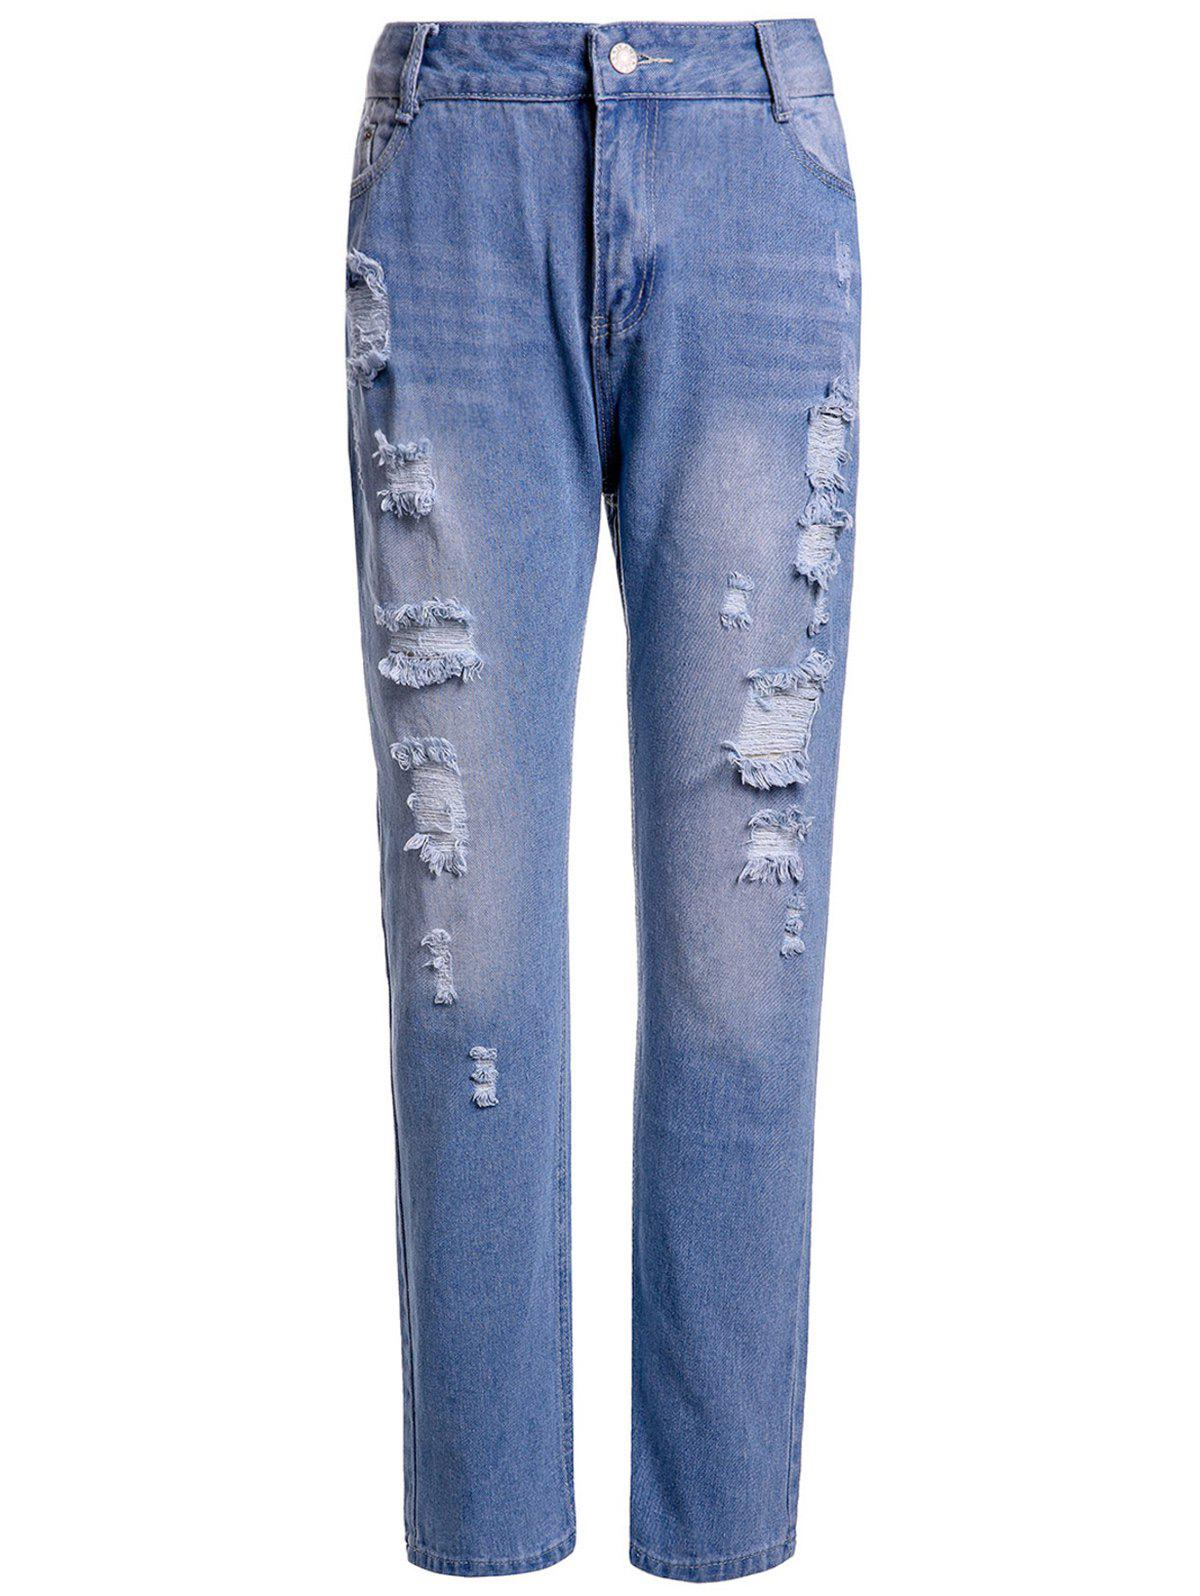 Casual High-Waisted Frayed Ripped Women's Ninth Jeans